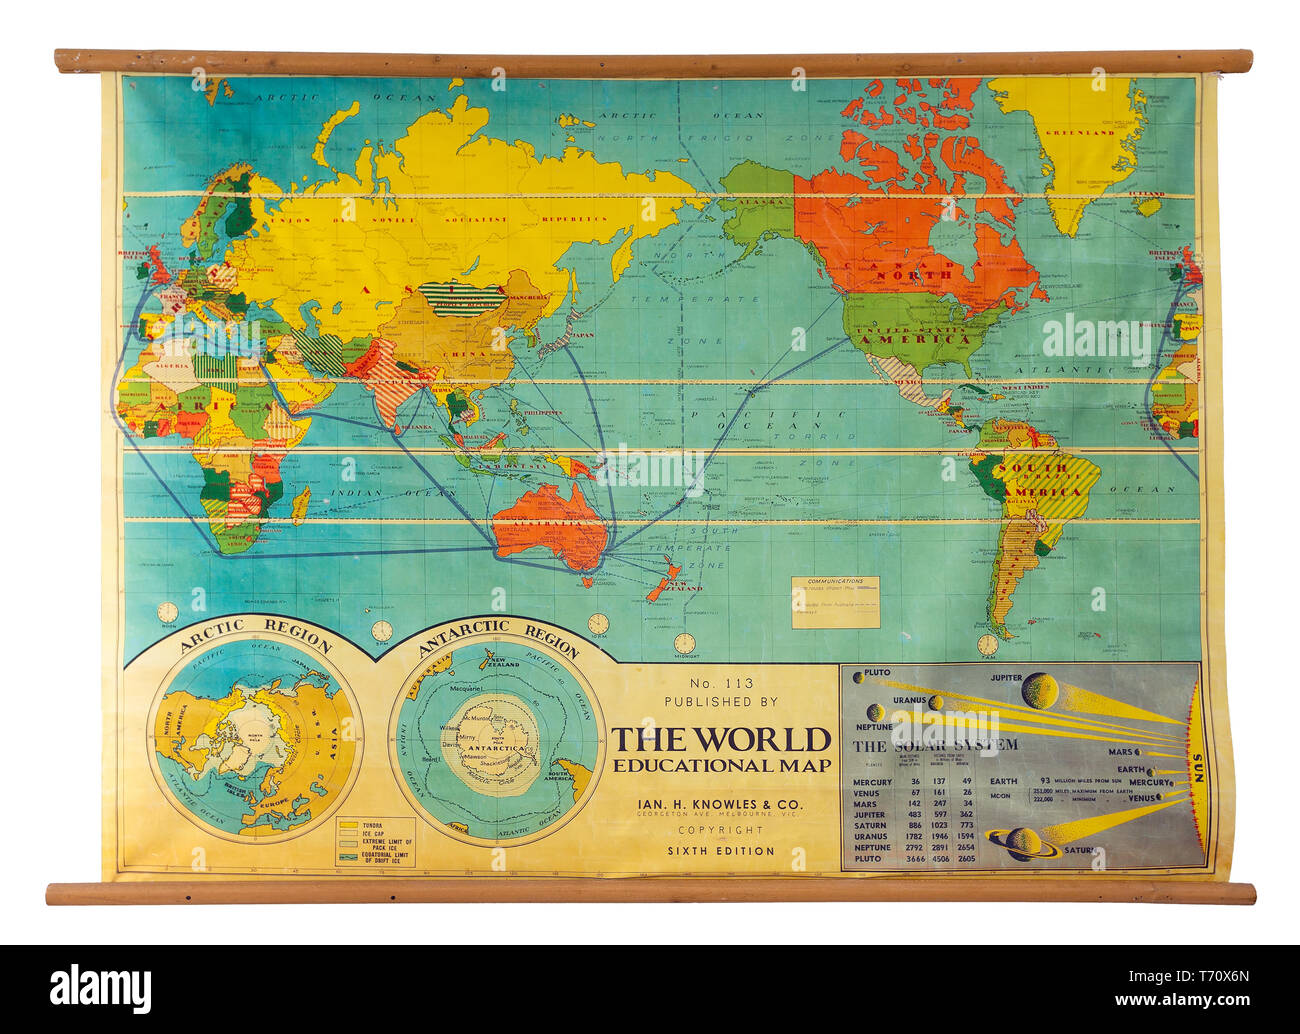 Map Of The World With Names Stock Photos & Map Of The World With ...